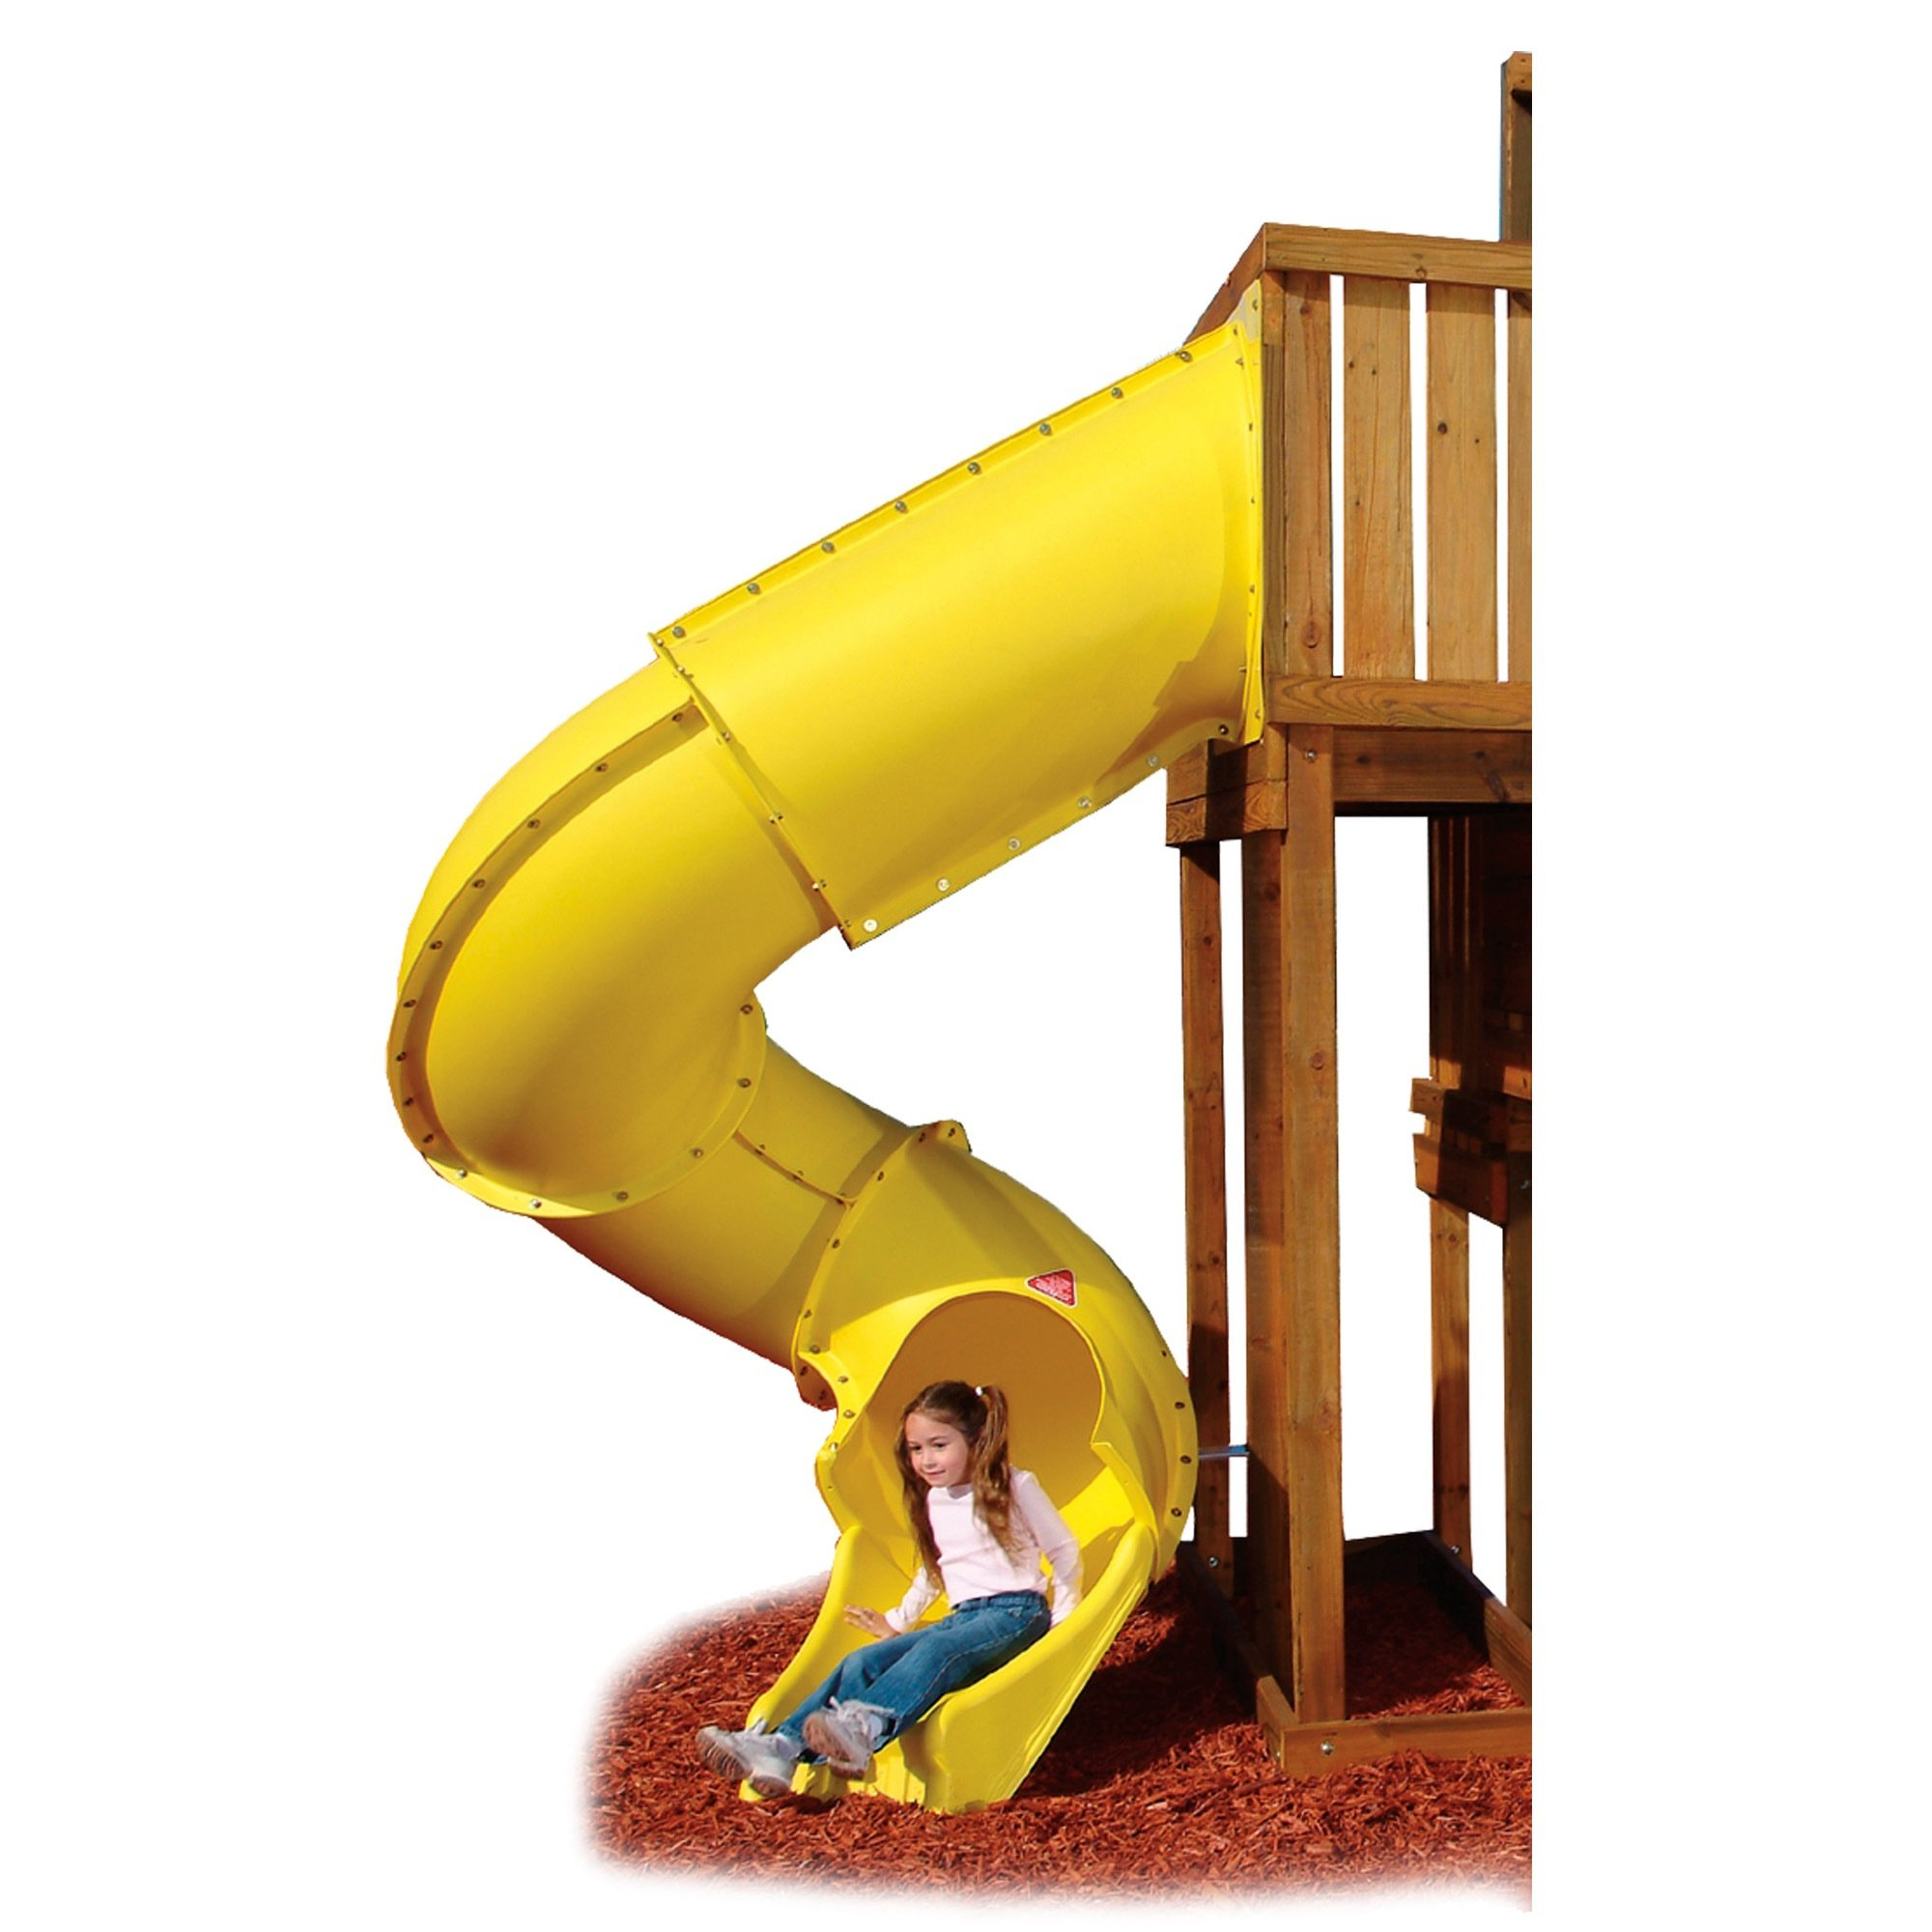 Turbo Tube Slide by Swing-N-Slide